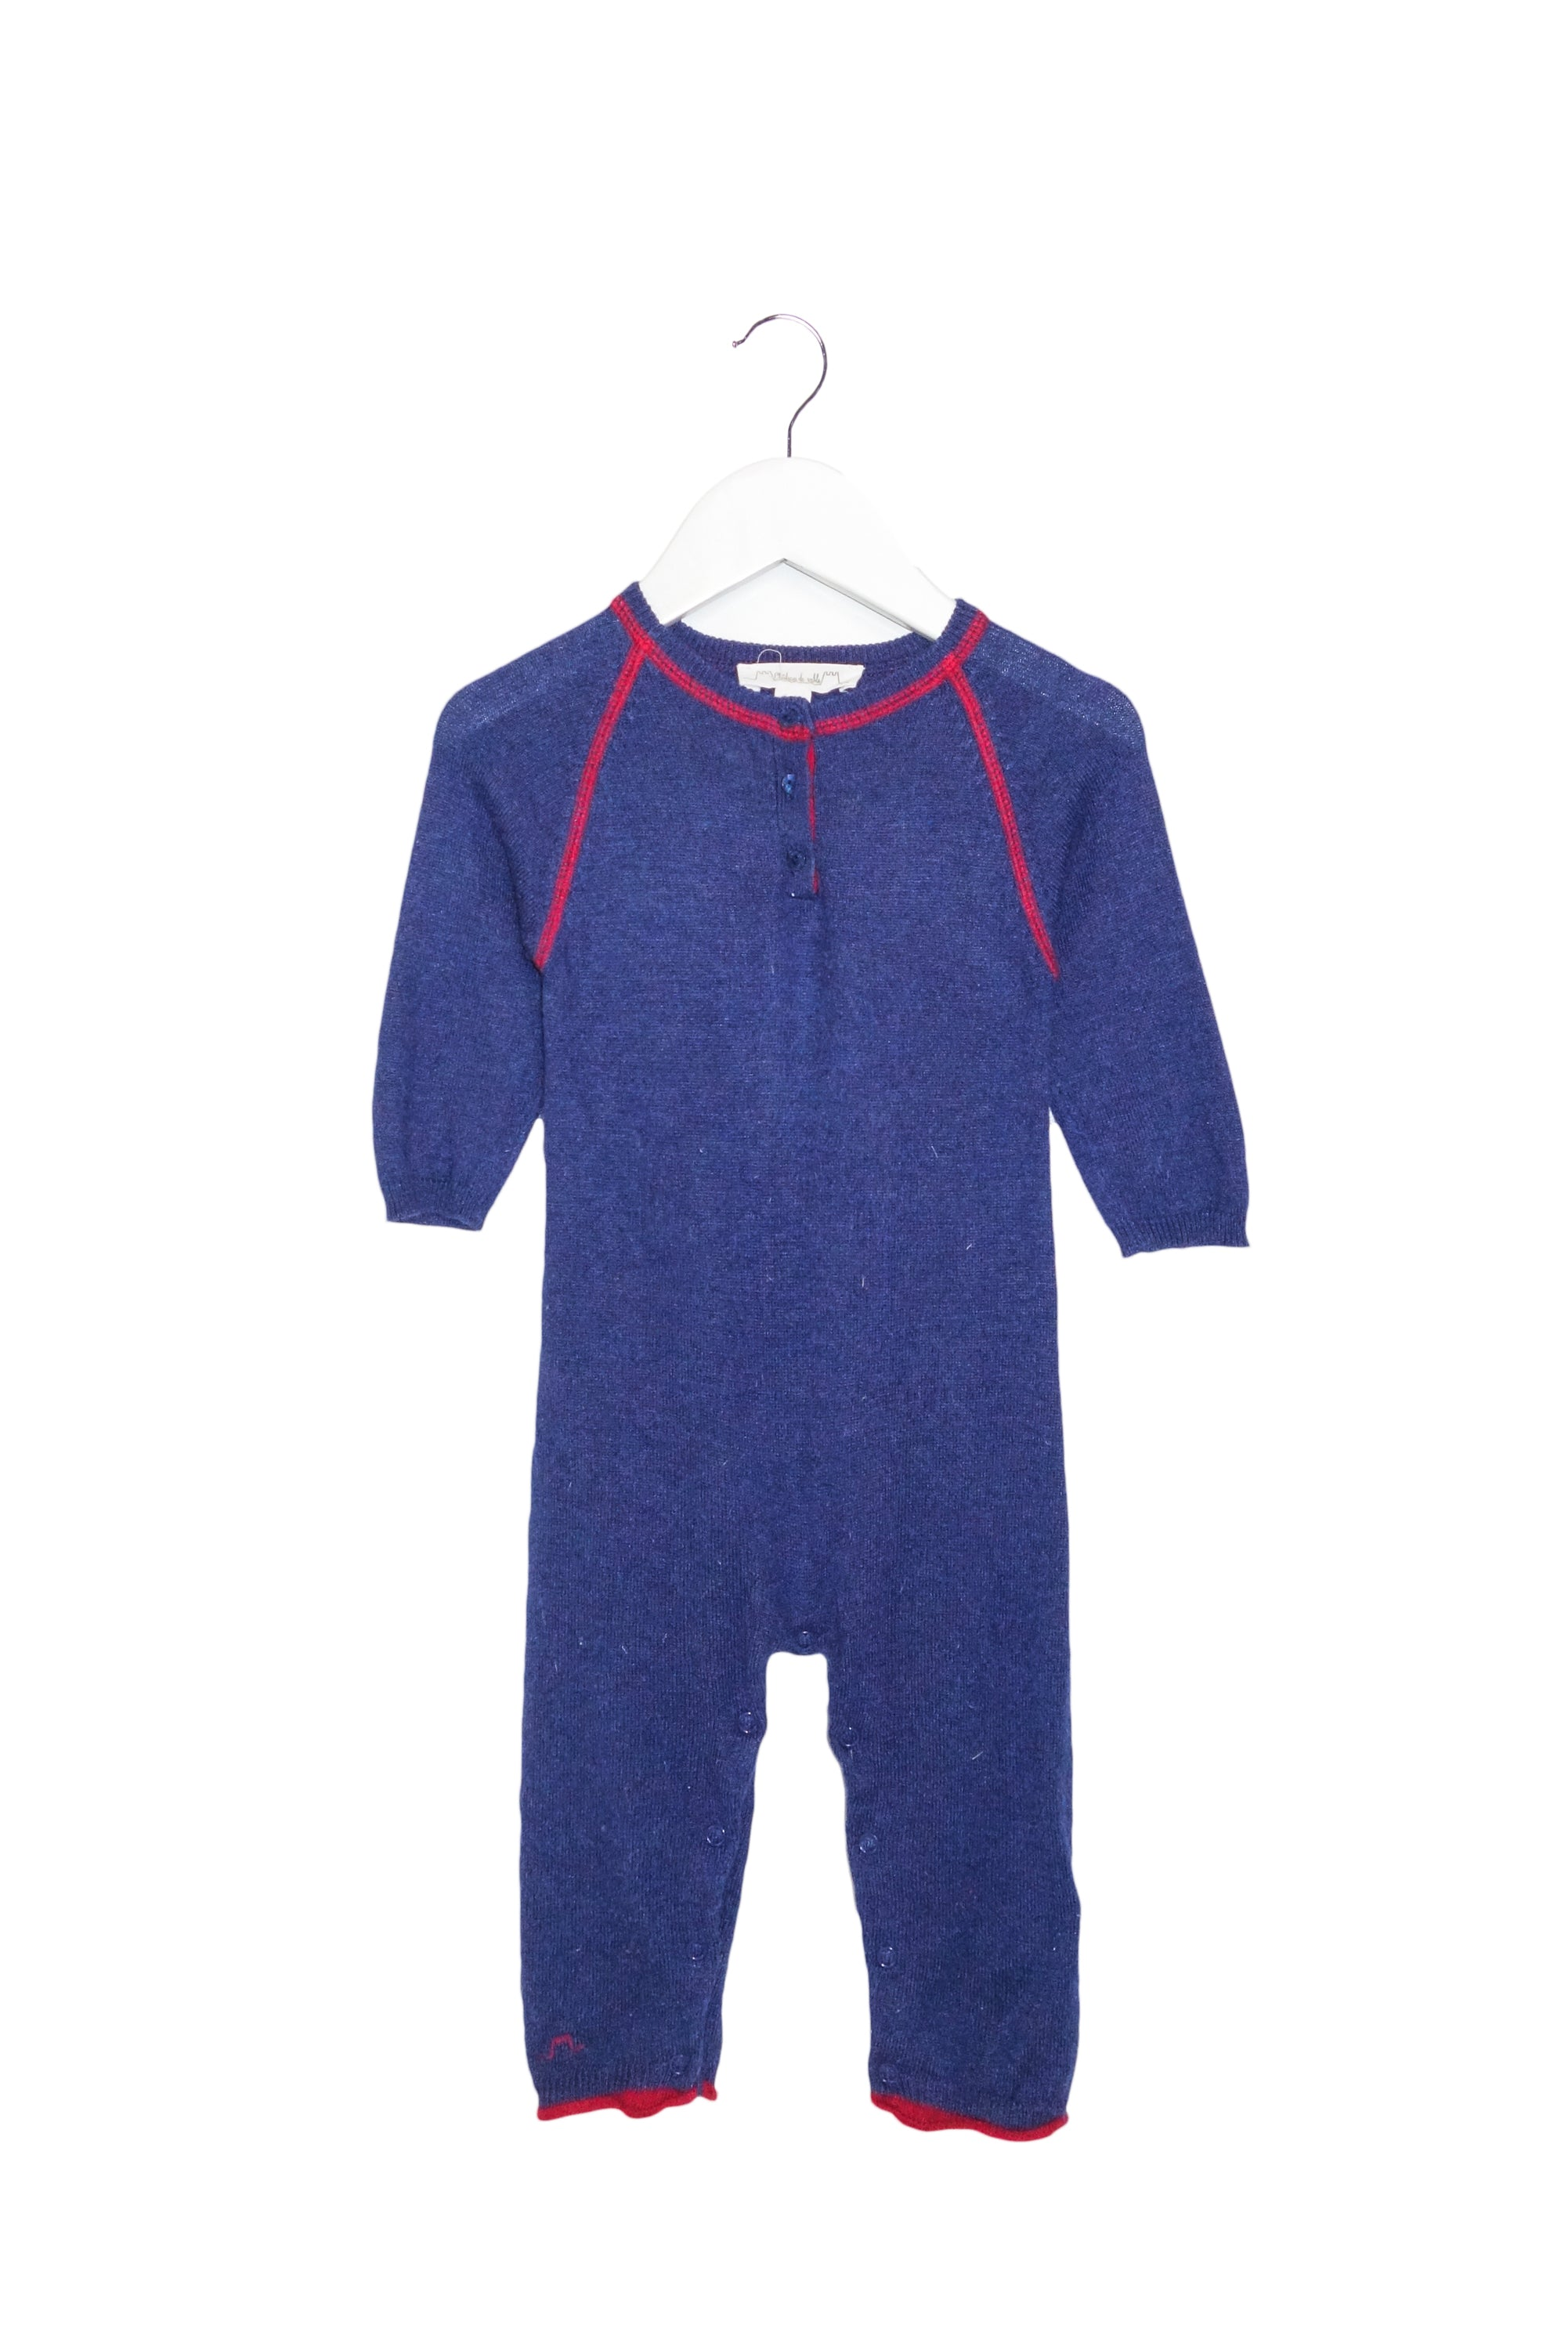 10013927 Chateau de Sable Baby ~ Jumpsuit 12M at Retykle